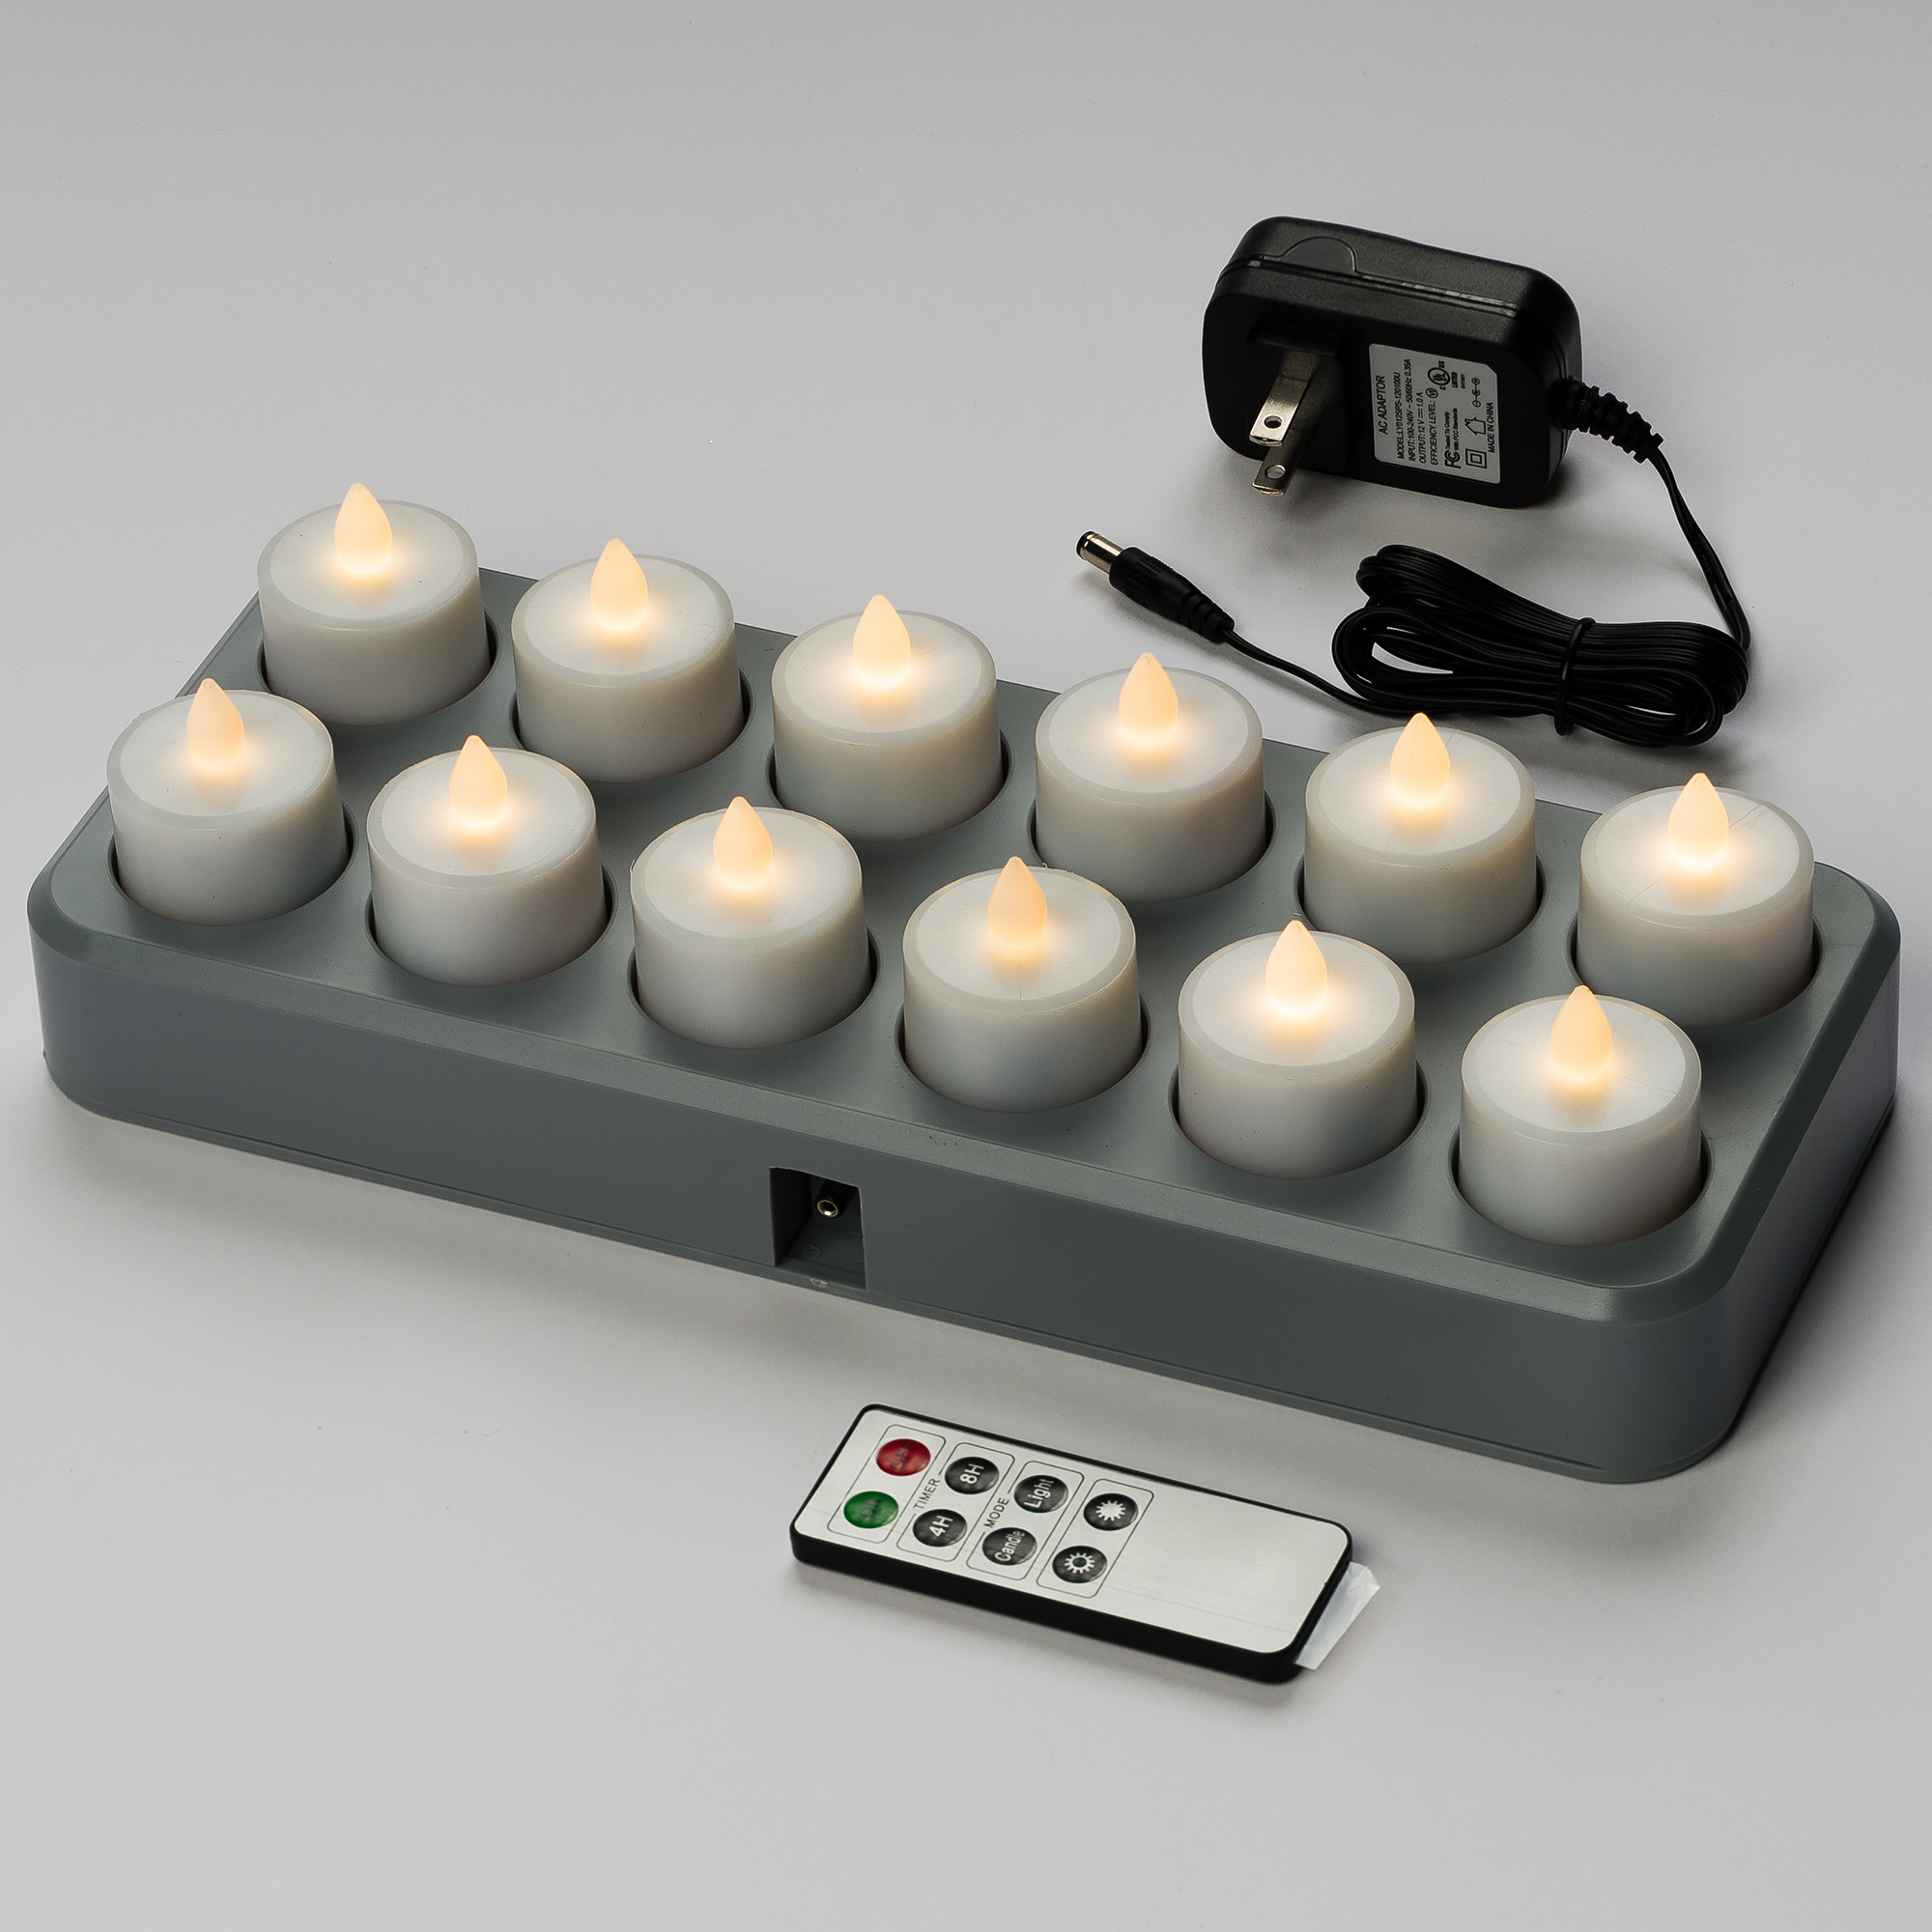 Mr. Light LED Rechargeable Tea Lights with Remote Control, Warm White and Induction Charging Base - Set of 12